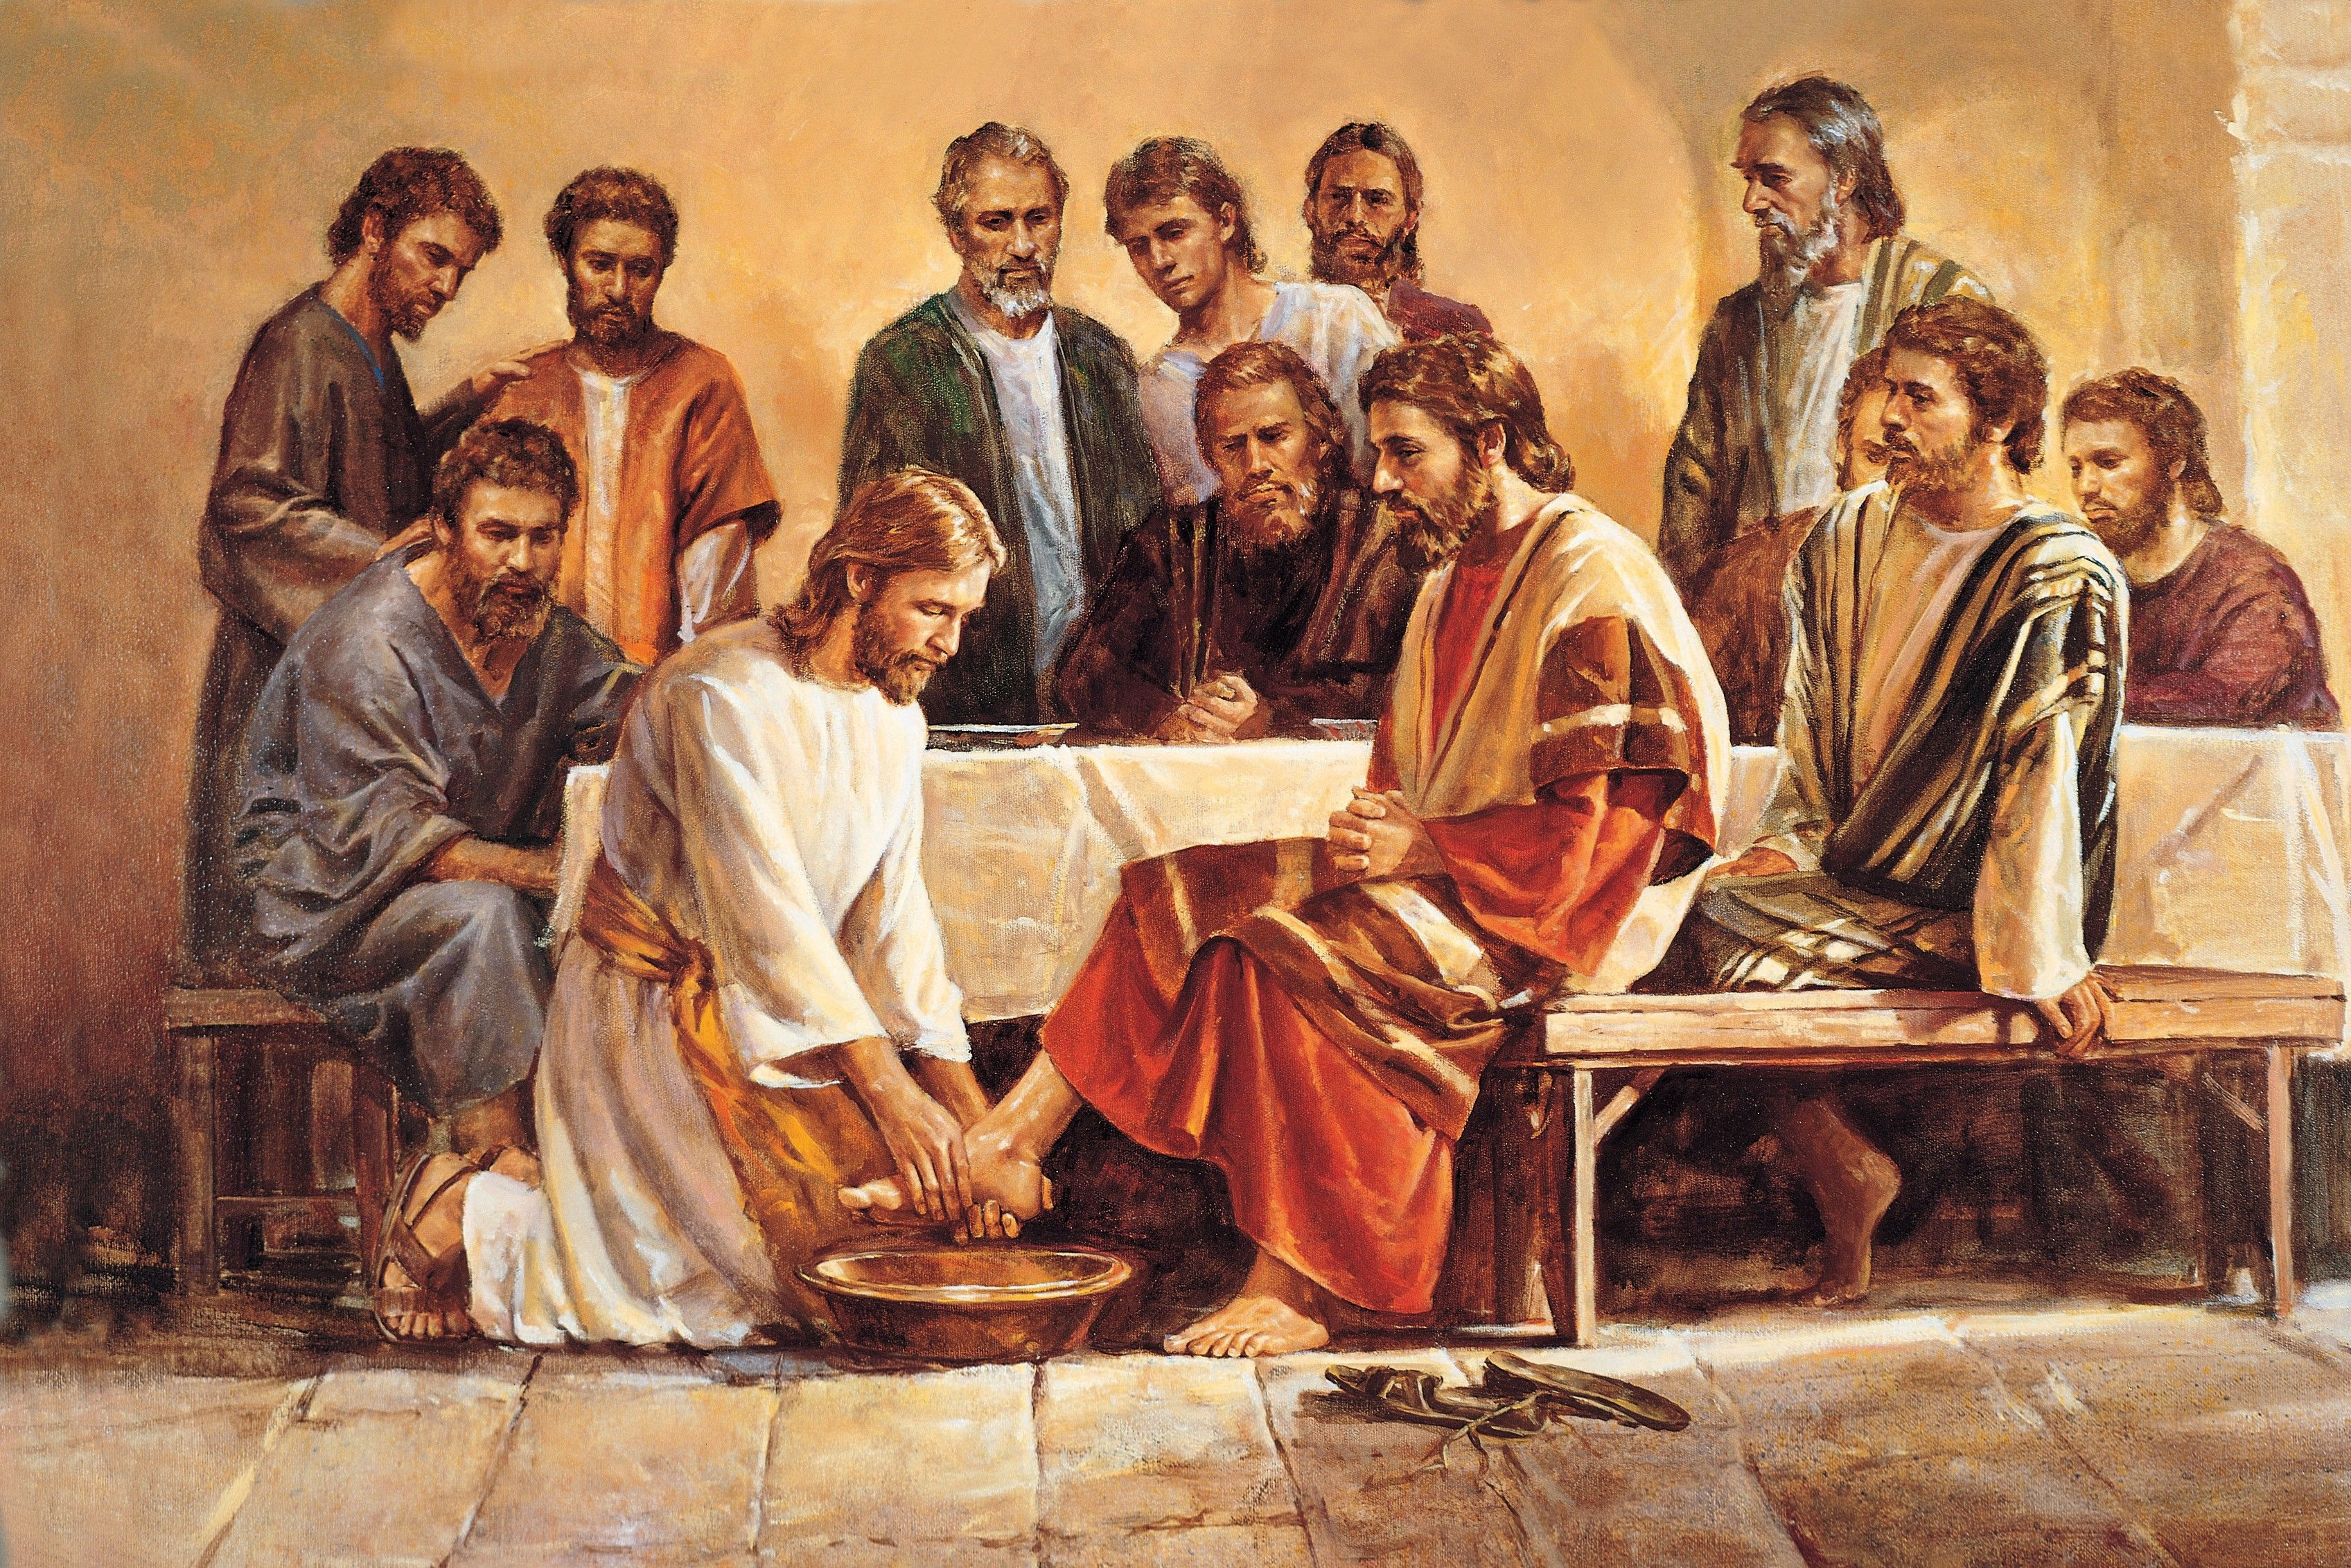 Jesus Washing the Apostles' Feet (Jesus Washing the Feet of the Apostles), by Del Parson (62550); GAK 226; GAB 55; Primary manual 2-60; Primary manual 6-26; John 13:4–15; Joseph Smith Translation, John 13:8–10 (in the Bible appendix)